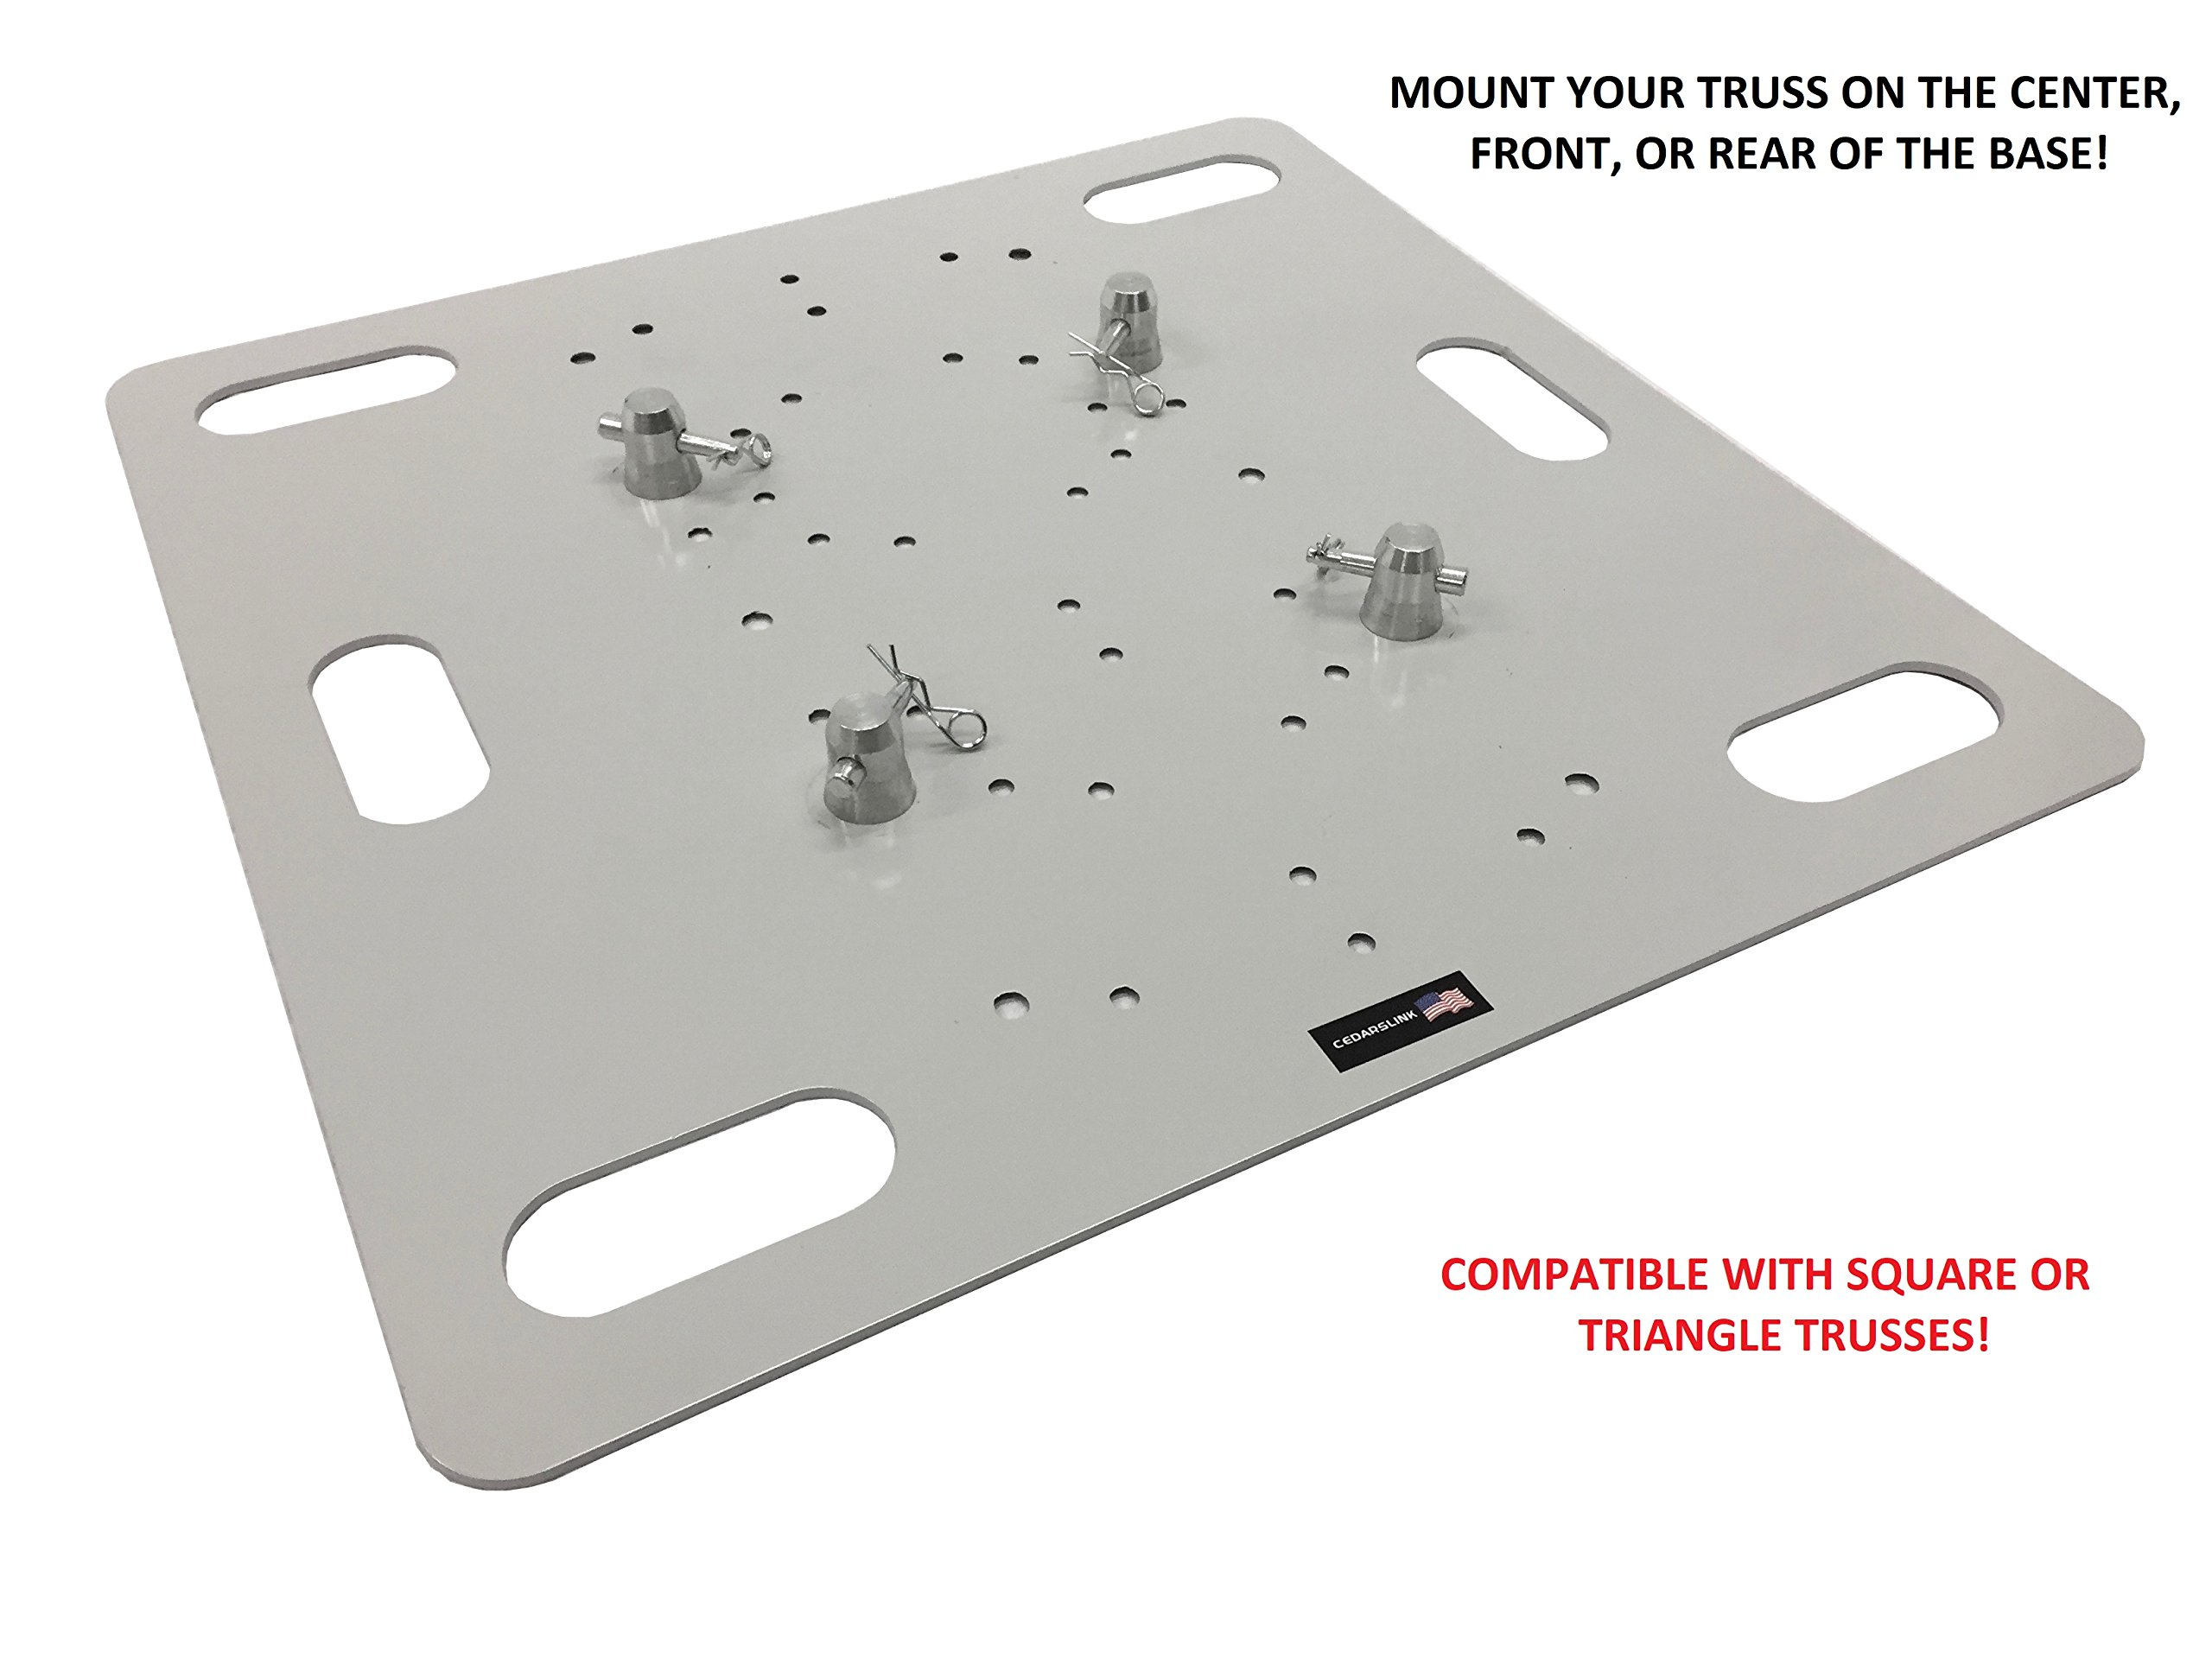 26''X26'' Base Plate For Square Aluminum Trussing /Triangle Fits F34 Global Truss